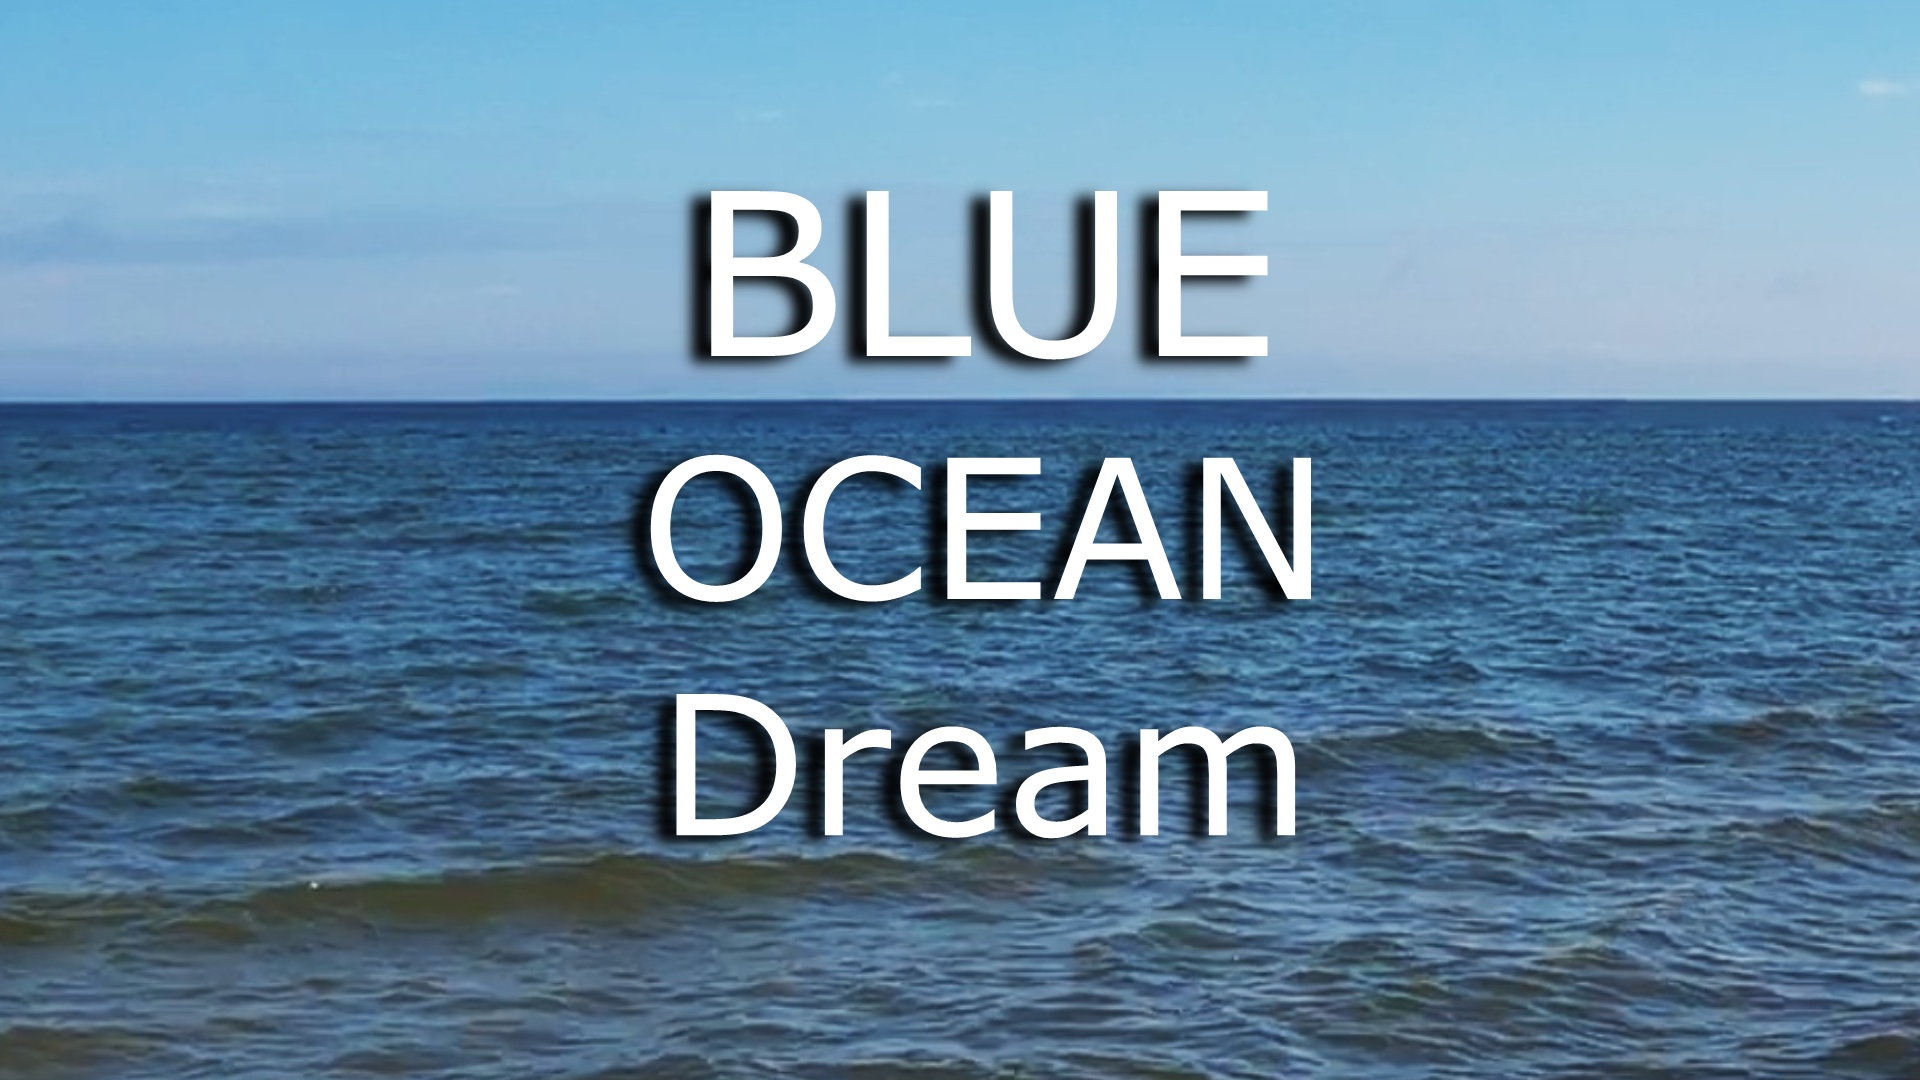 Blue Ocean Dream Meaning